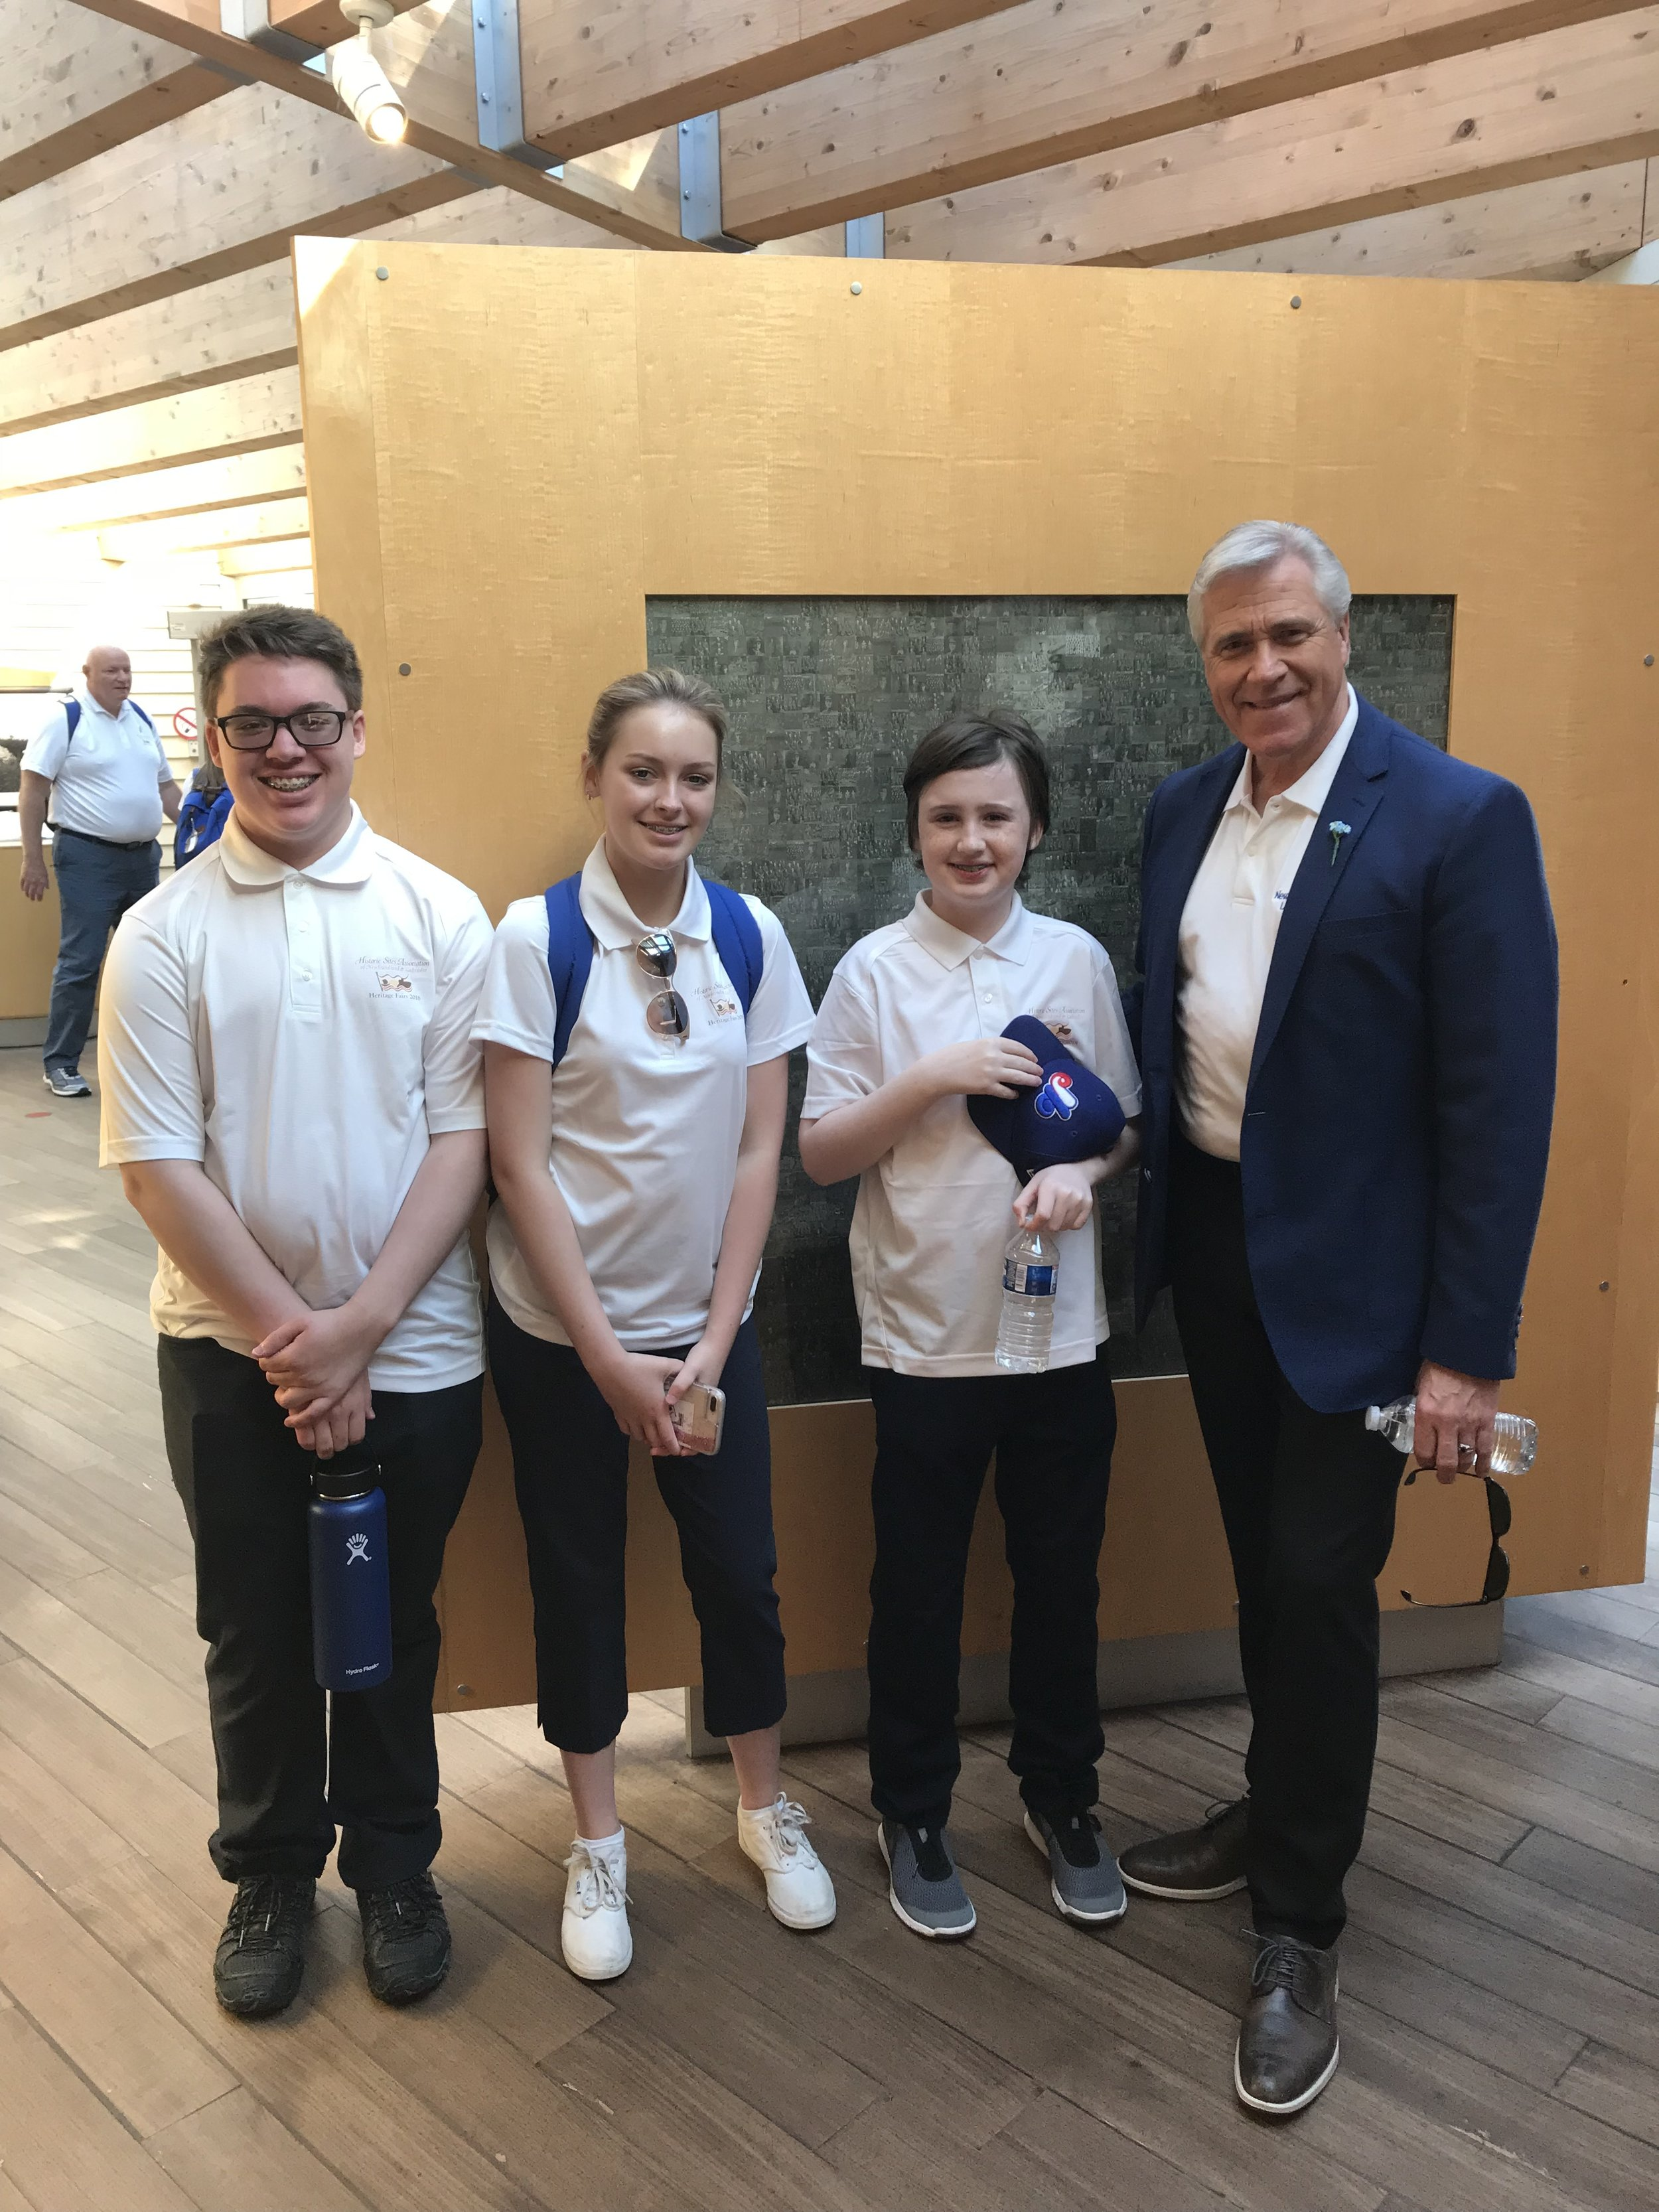 Students Kyle Pike, Emily O'Quinn and Liam Power with Permire Dwight Ball at the Newfoundland War Memorial Park in Beaumont-Hamel in France.